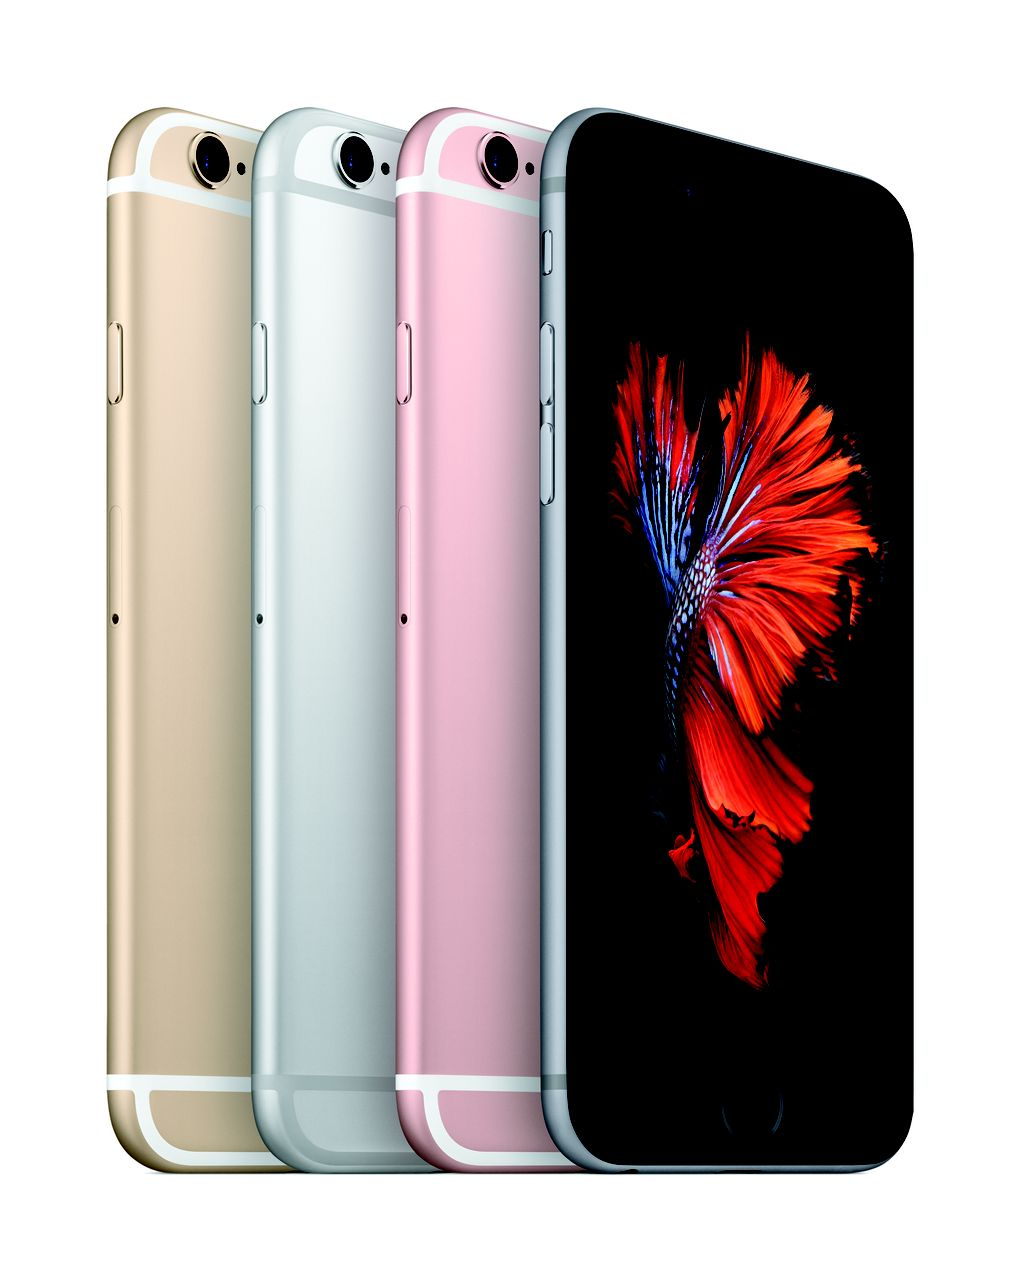 iPhone6s-4Color-RedFish-PR-PRINT.0